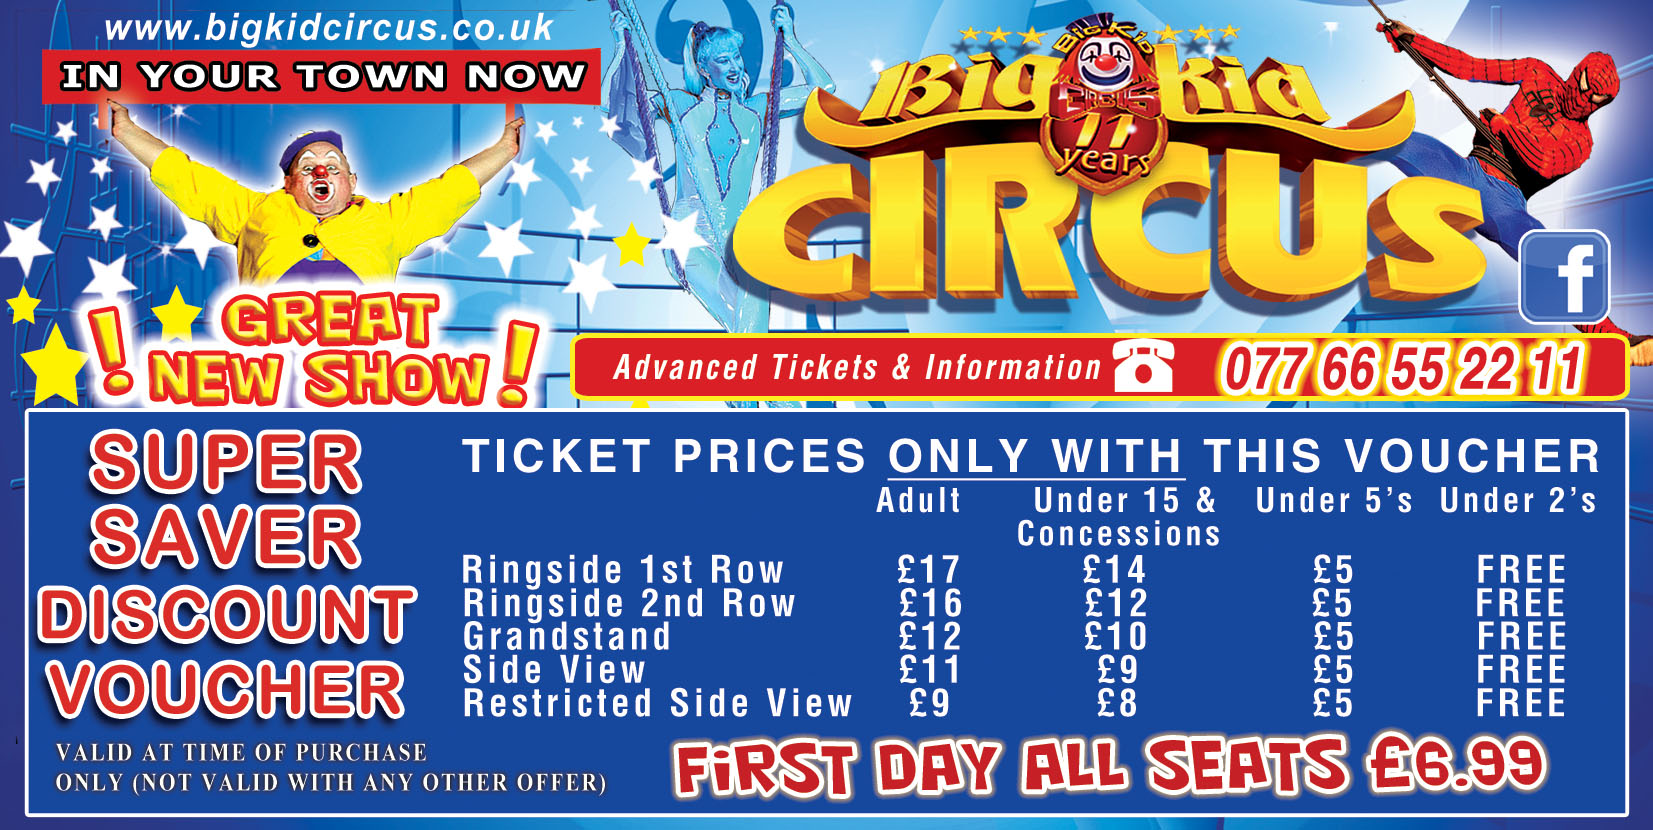 Big Kid Circus Discount Voucher